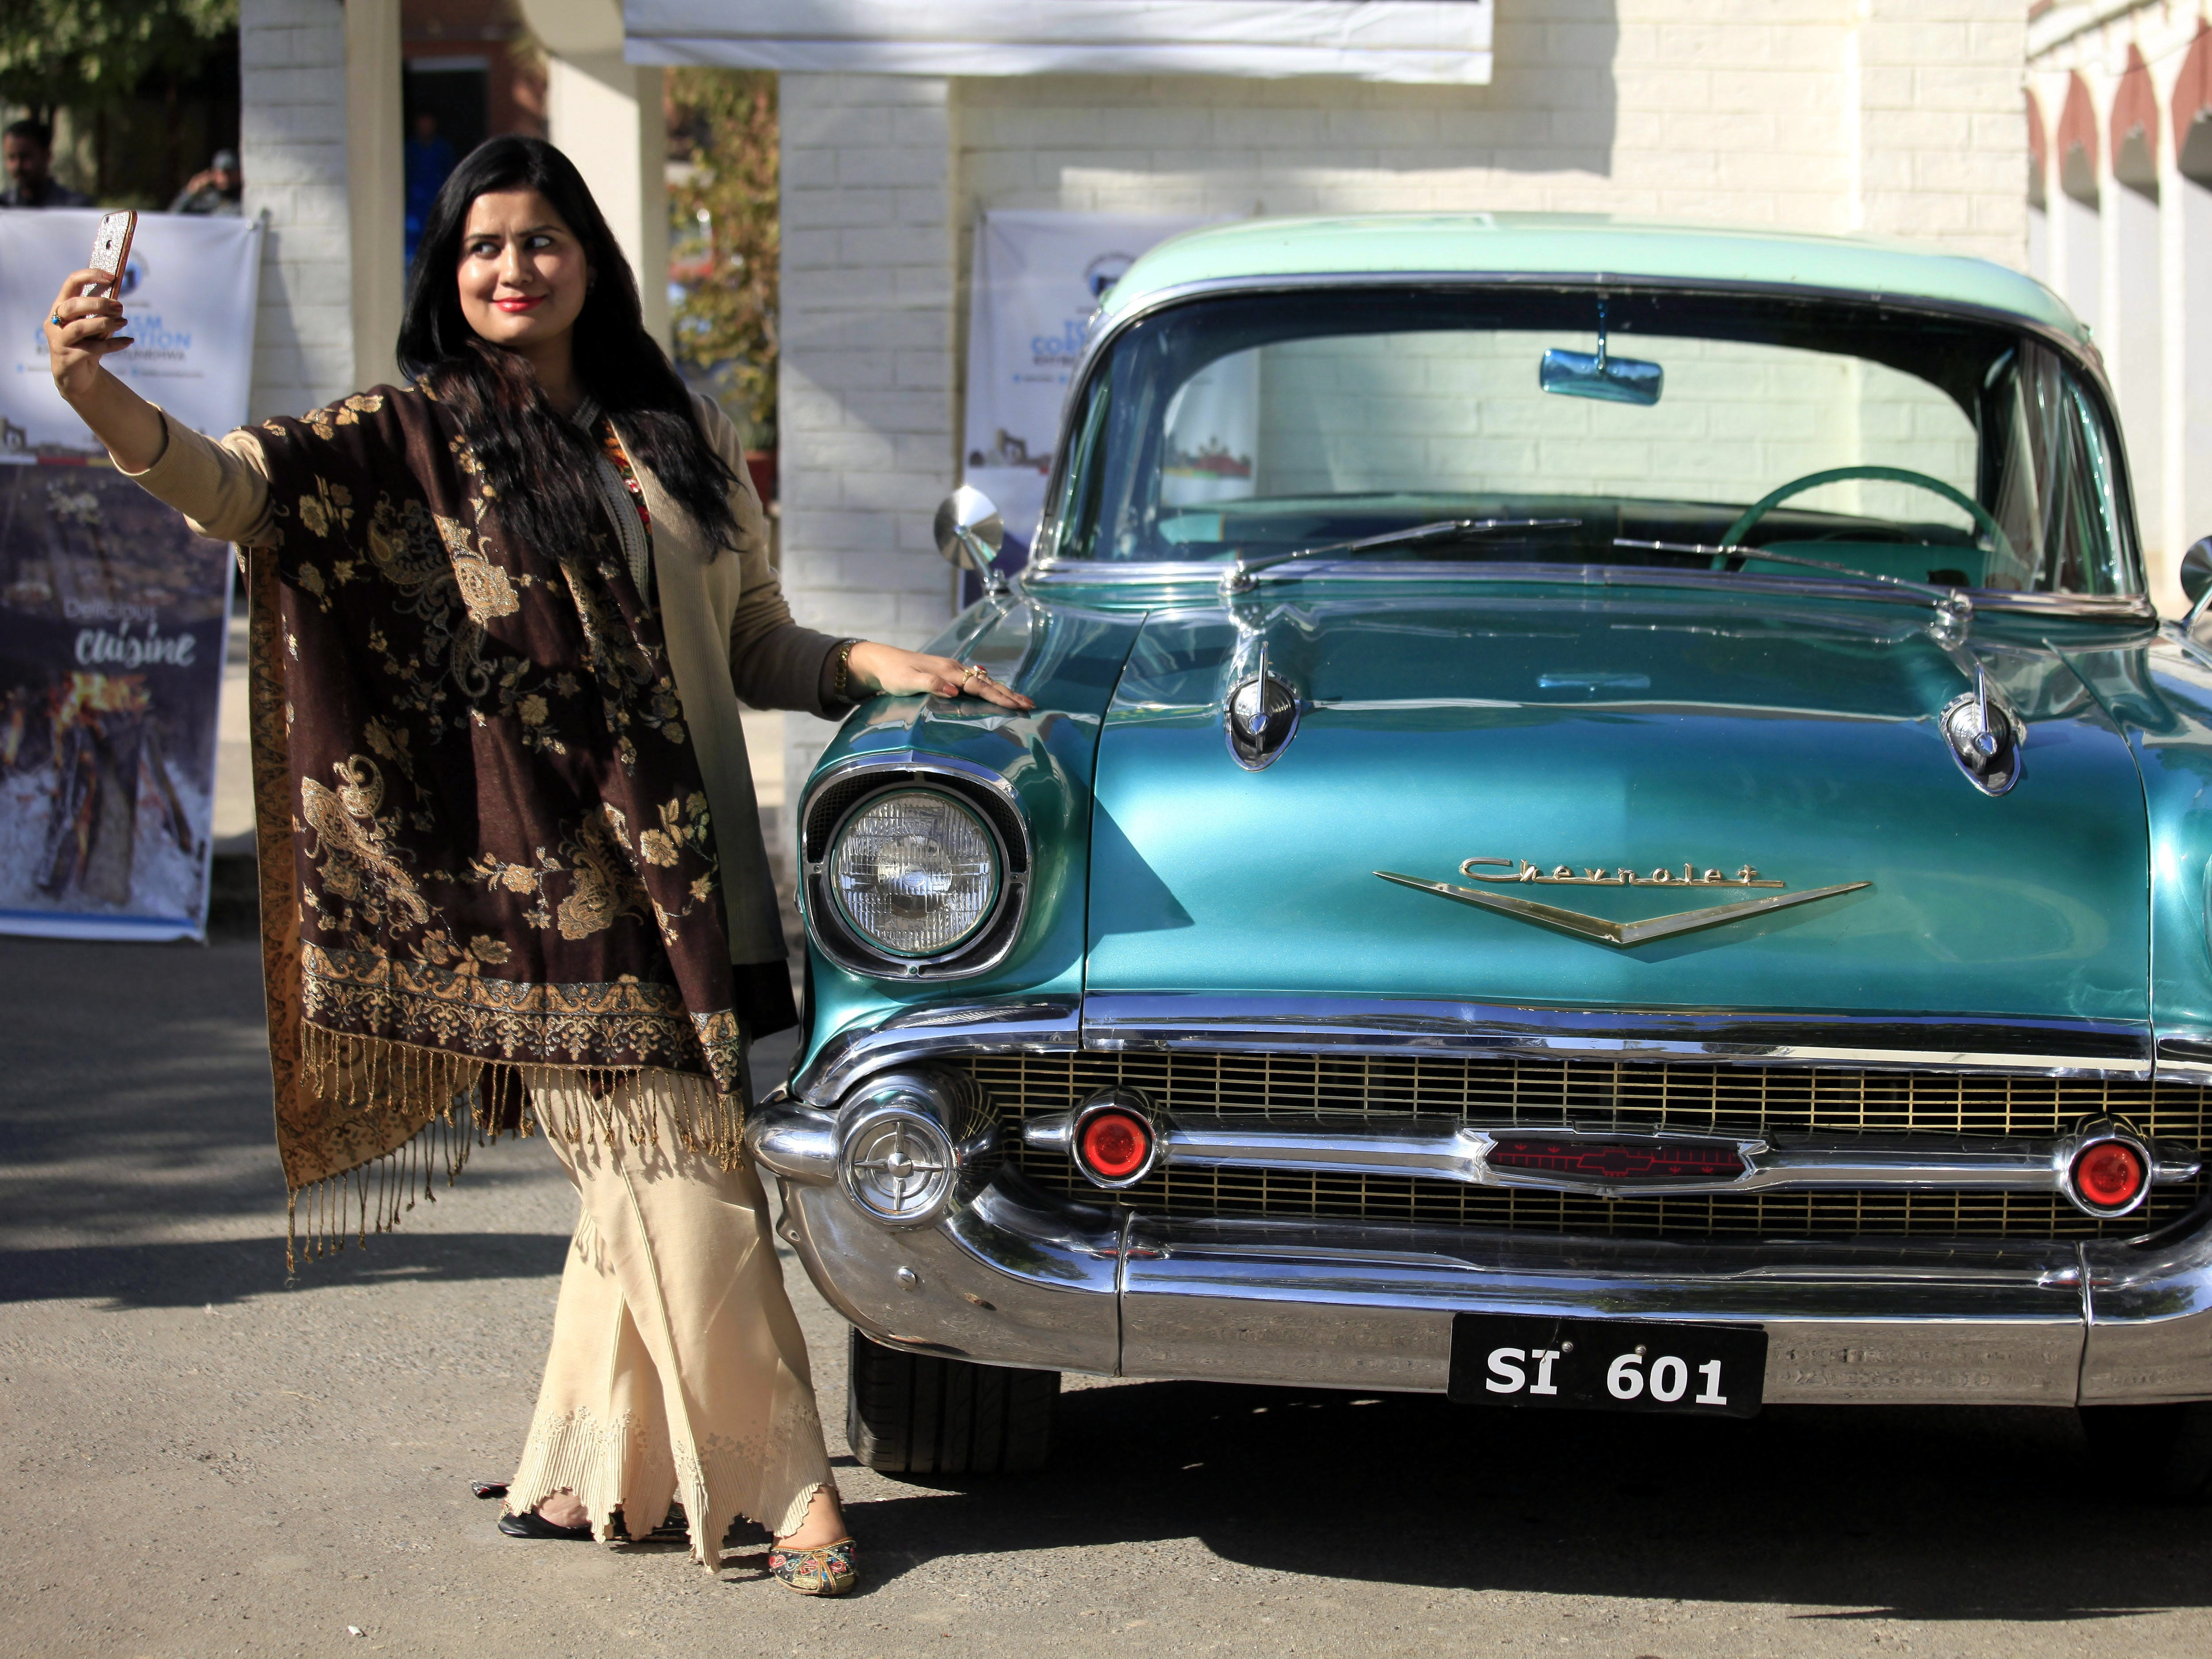 epa07185125 A Pakistani girl takes a selfie next to a vintage Chevrolet '57 during a show organized by the Vintage and Classic Car Club of Pakistan in Peshawar, Pakistan, 23 November 2018. More than 60 vintage and classic cars were on display from all across Pakistan, some coming all the way from Karachi and heading on to Khyber.  EPA-EFE/BILAWAL ARBAB ORG XMIT: PSH01